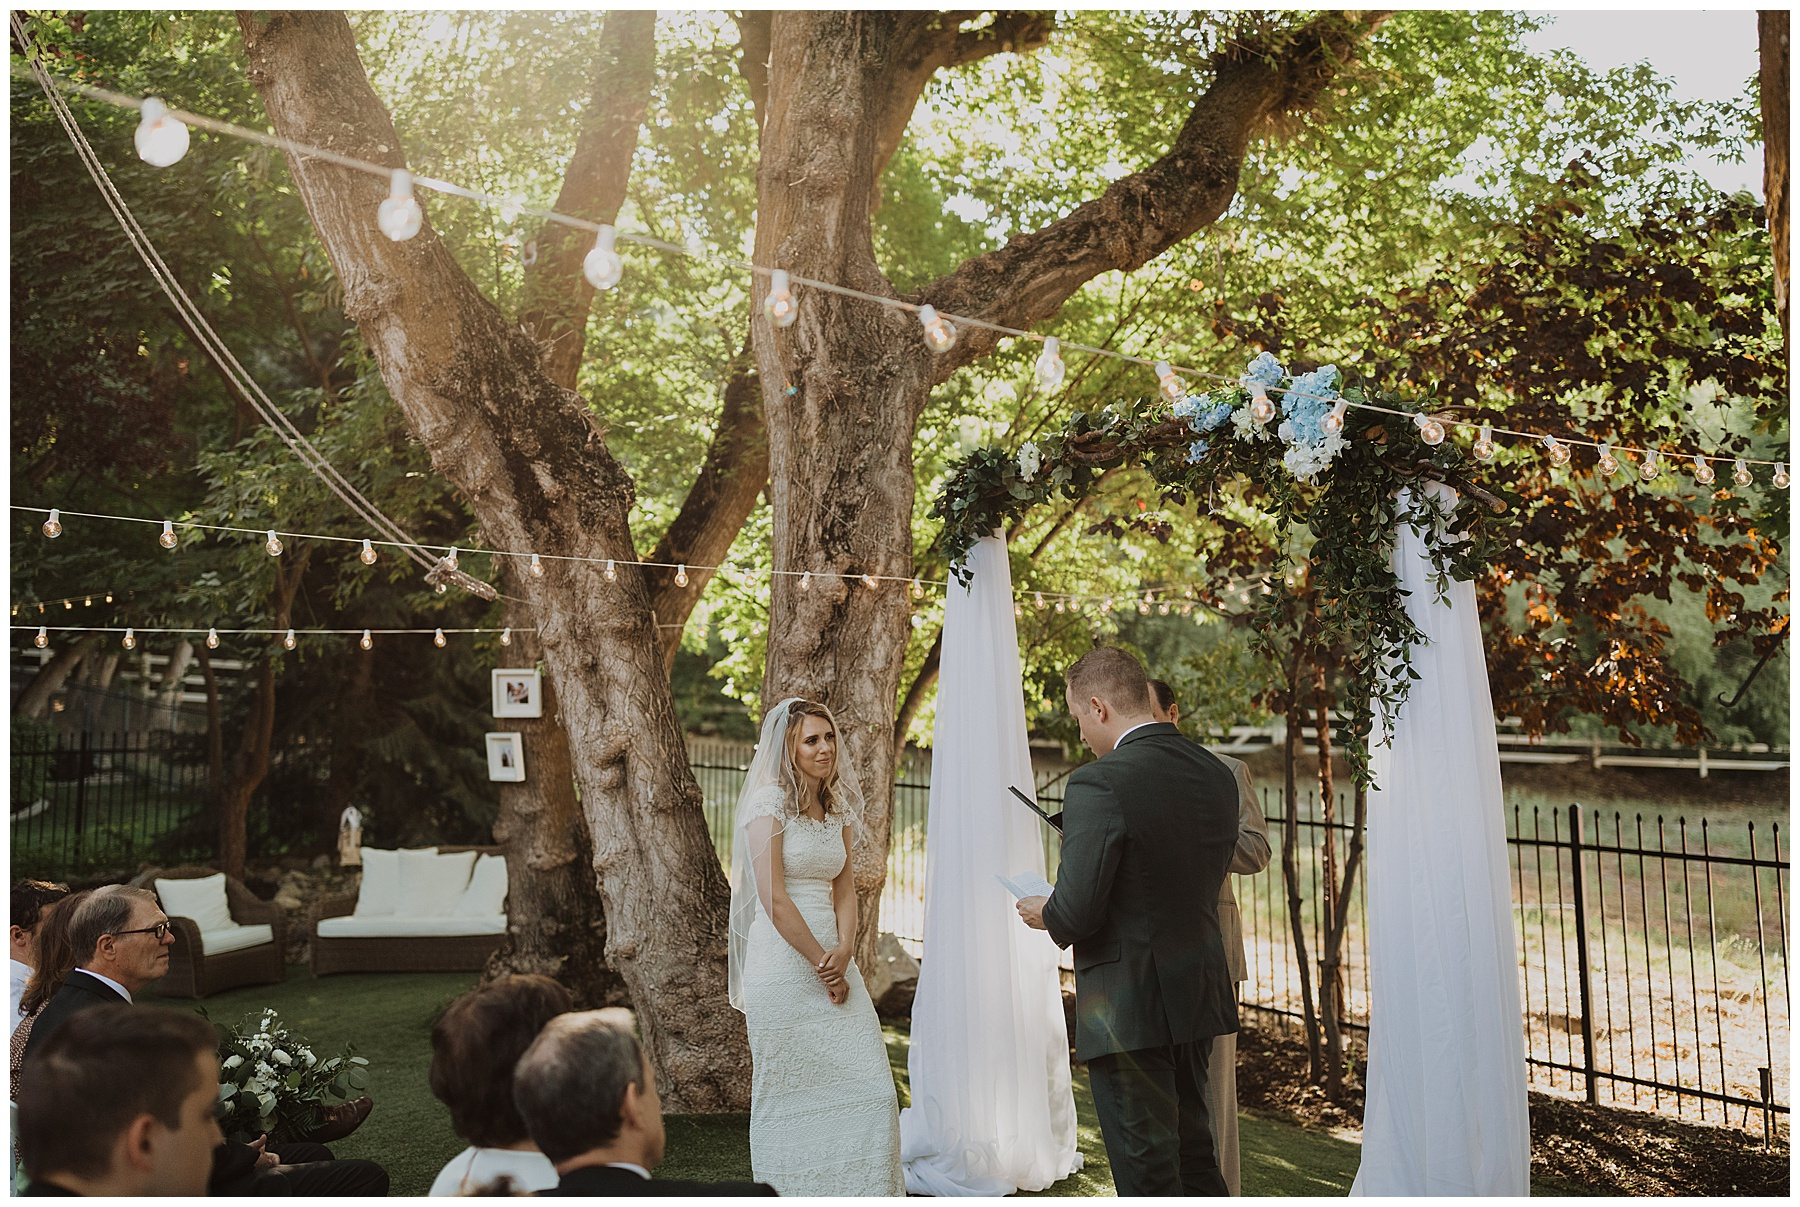 Bride and groom saying their vows at a backyard wedding in Ogden Utah